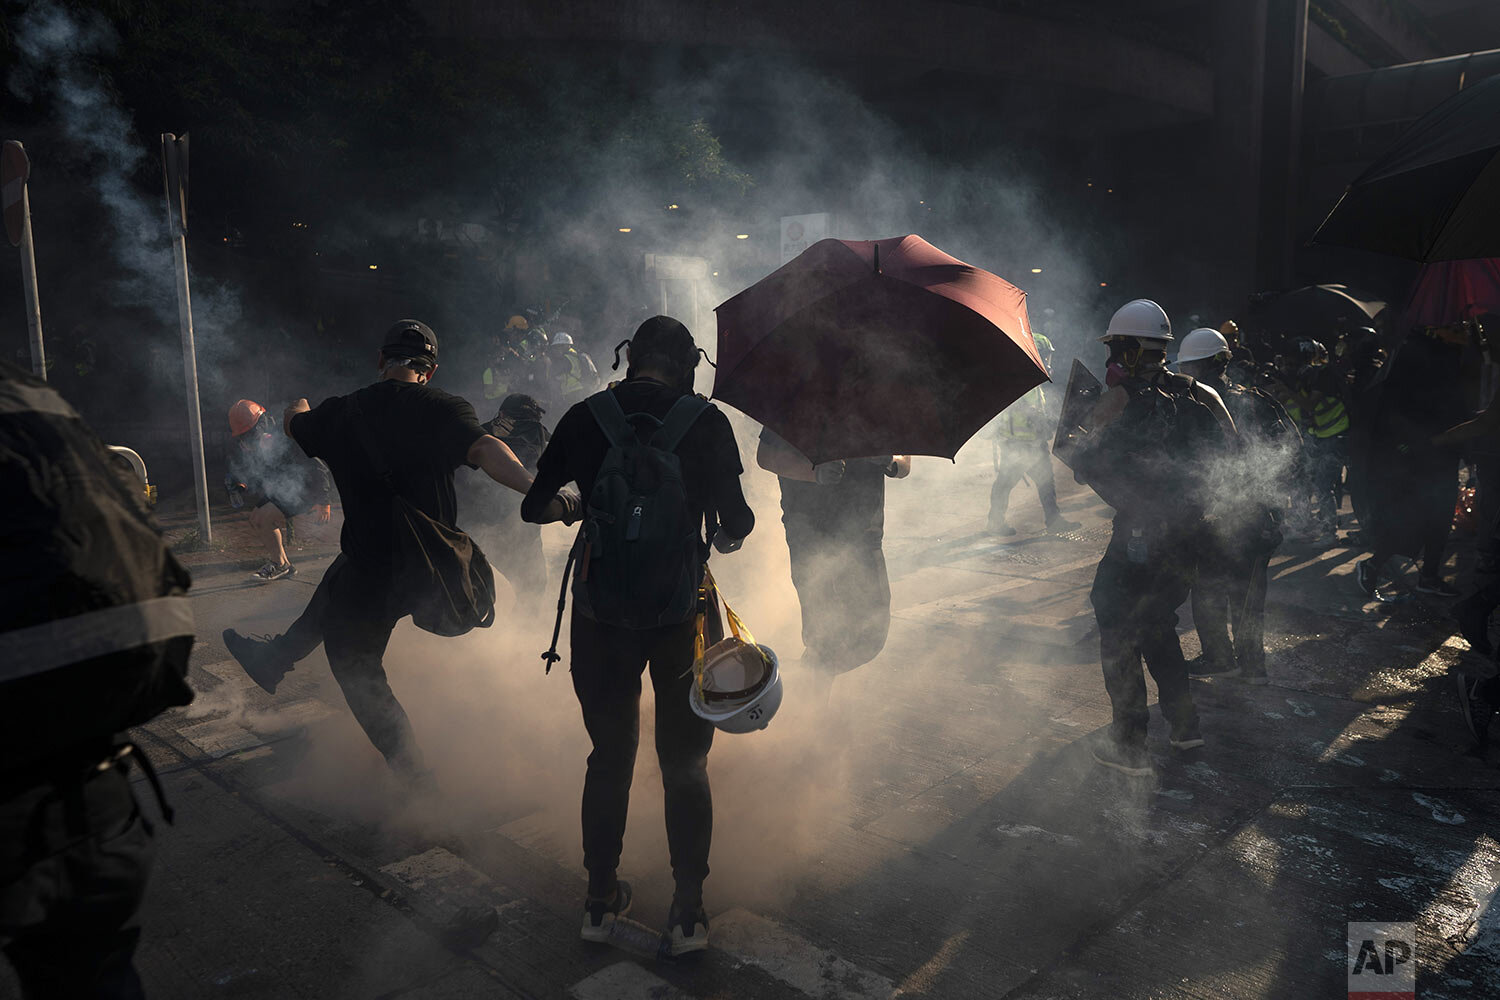 A protestor kicks back an exploded tear gas shell in Hong Kong, Tuesday, Oct. 1, 2019. Hong Kong police shot a protester at close range, leaving him bleeding from his shoulder and howling on the ground, in a fearsome escalation of anti-government demonstrations that spread across the semi-autonomous Chinese territory on Tuesday.  (AP Photo/Felipe Dana)